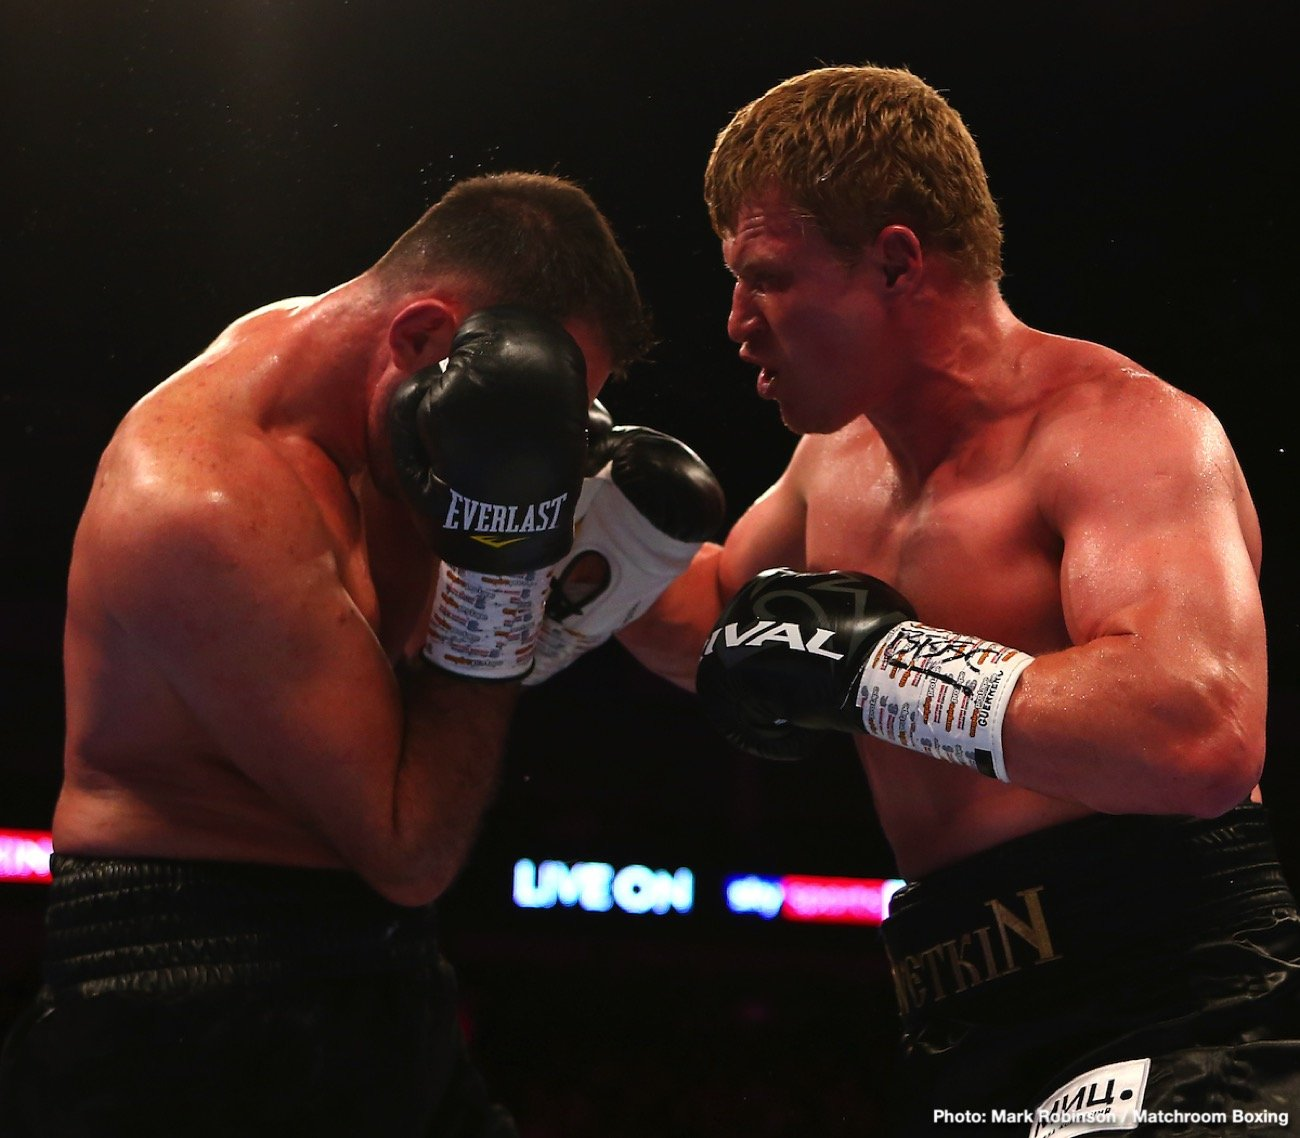 Alexander Povetkin - Following his dominant 12-round decision this past Saturday over heavyweight contender Hughie Fury, Alexander Povetkin has set his sights on another family member,